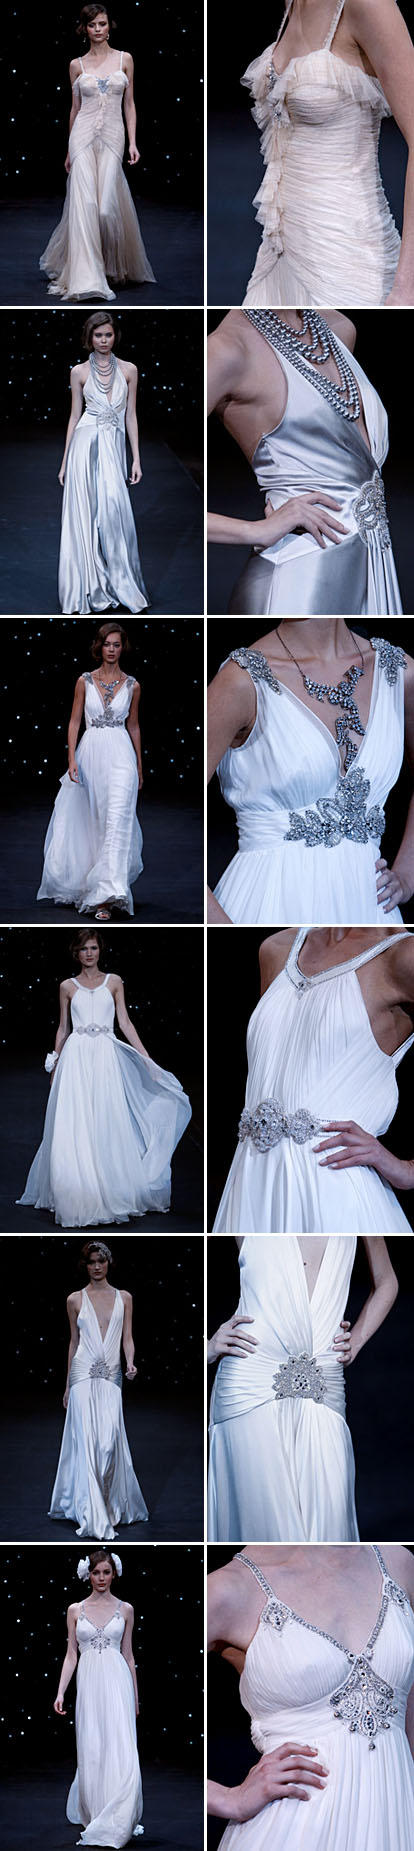 fall 09 wedding gowns from jenny packham